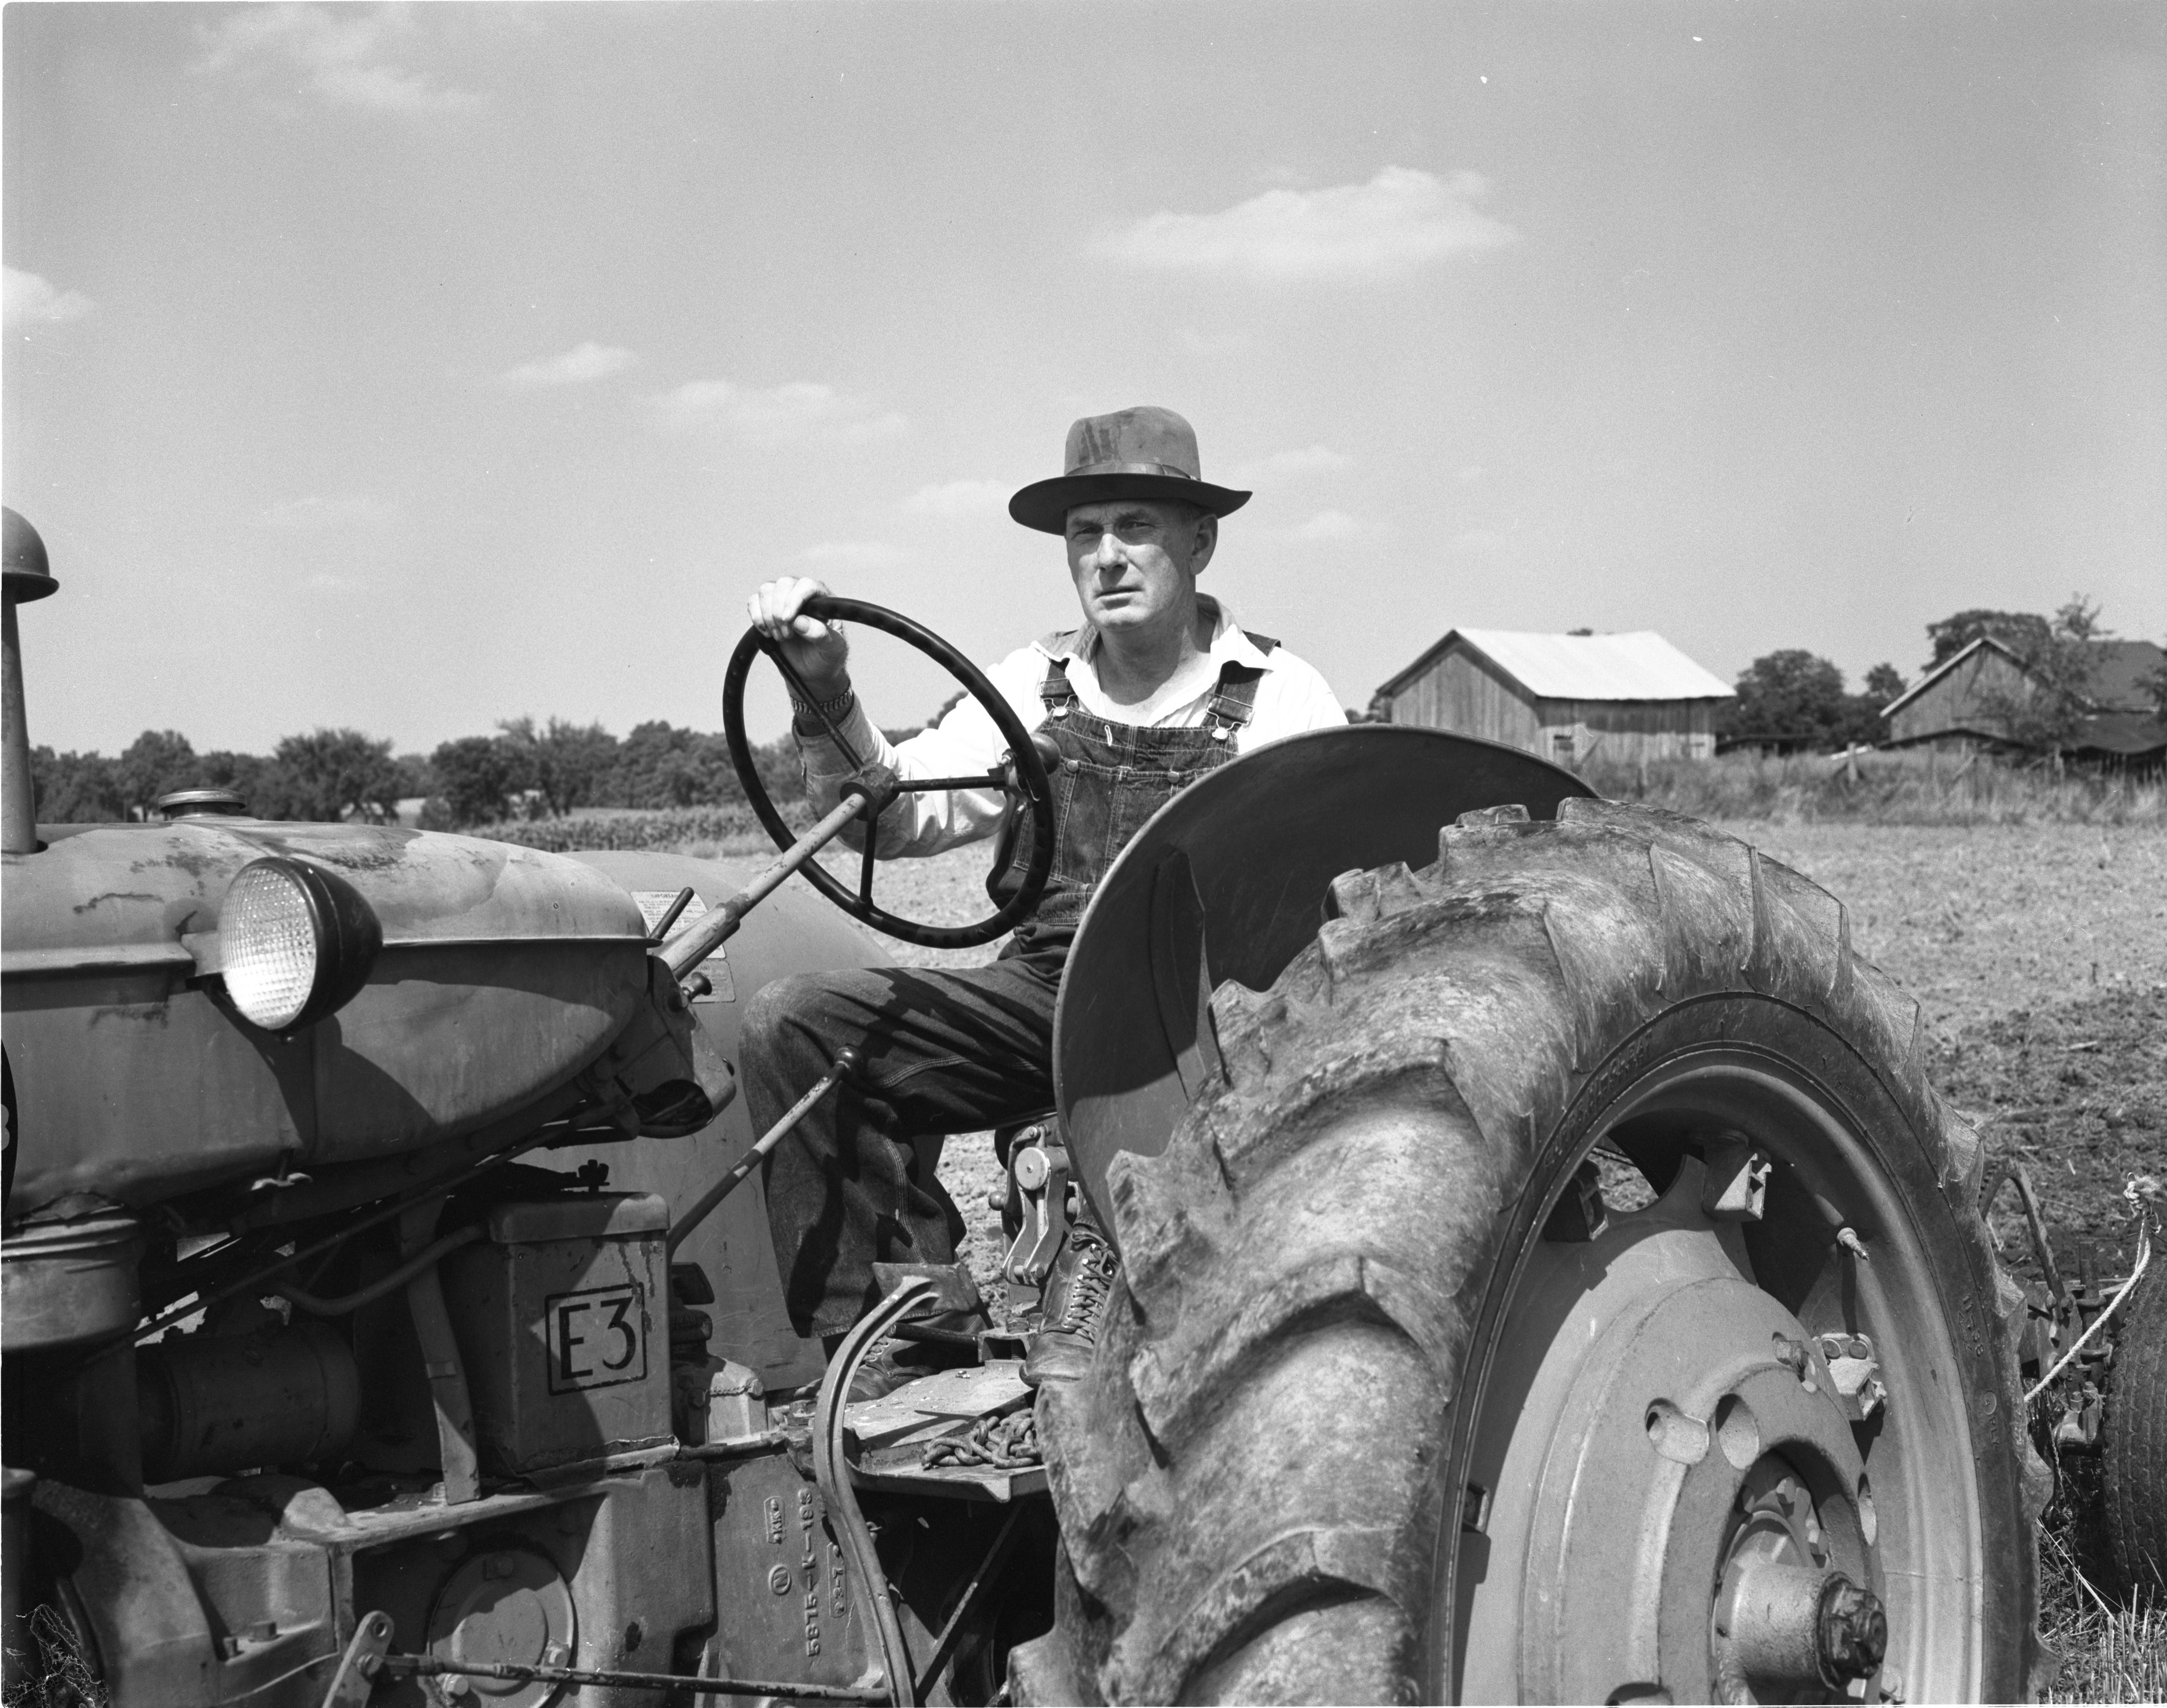 Emory Mulholland, Farmer & Superior Township Supervisor, On His Tractor, August 1956 image